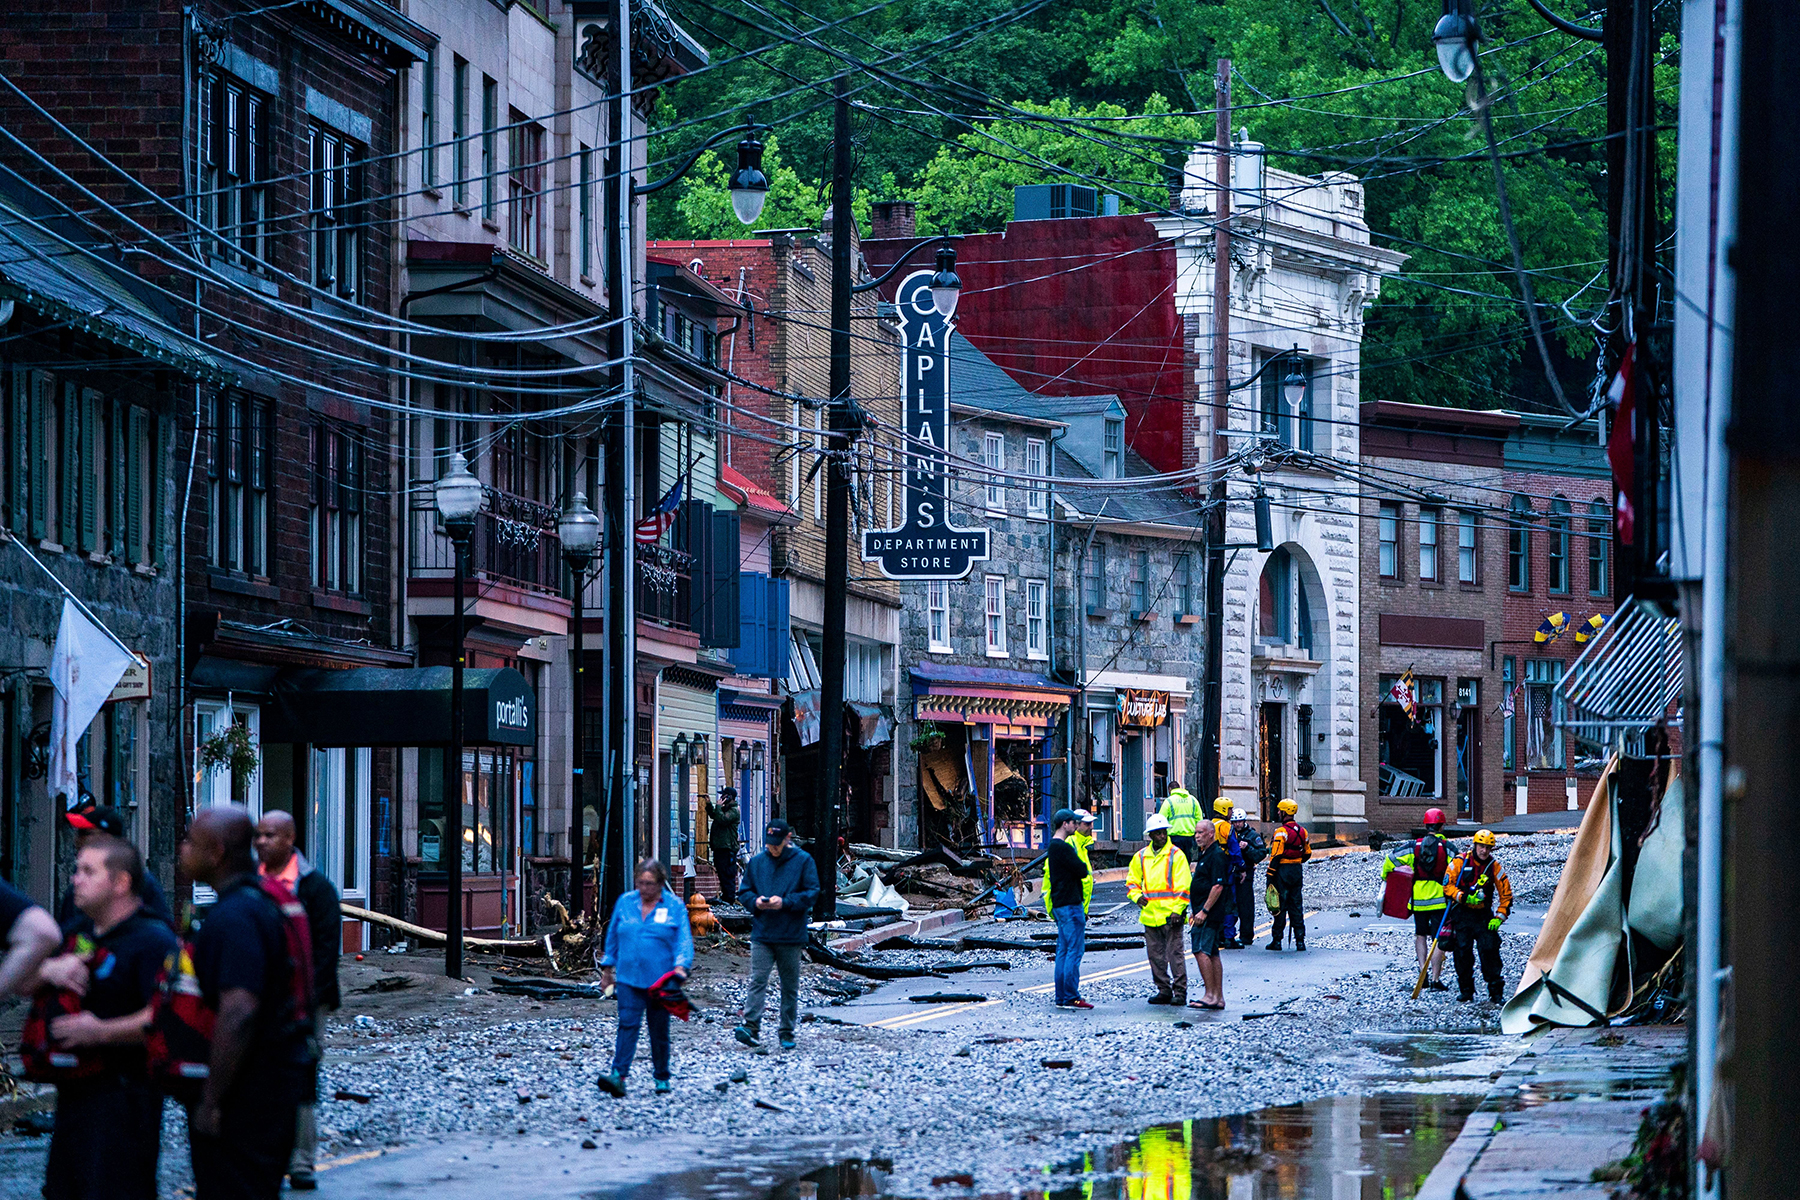 Rescue personnel examine damage on Main Street after a flash flood rushed through the historic town of Ellicott City, Maryland, USA, 27 May 2018. The National Weather Service stated as much as 9.5 inches of rain fell in the area.Flash floods ravage Ellicott City Maryland, USA - 27 May 2018